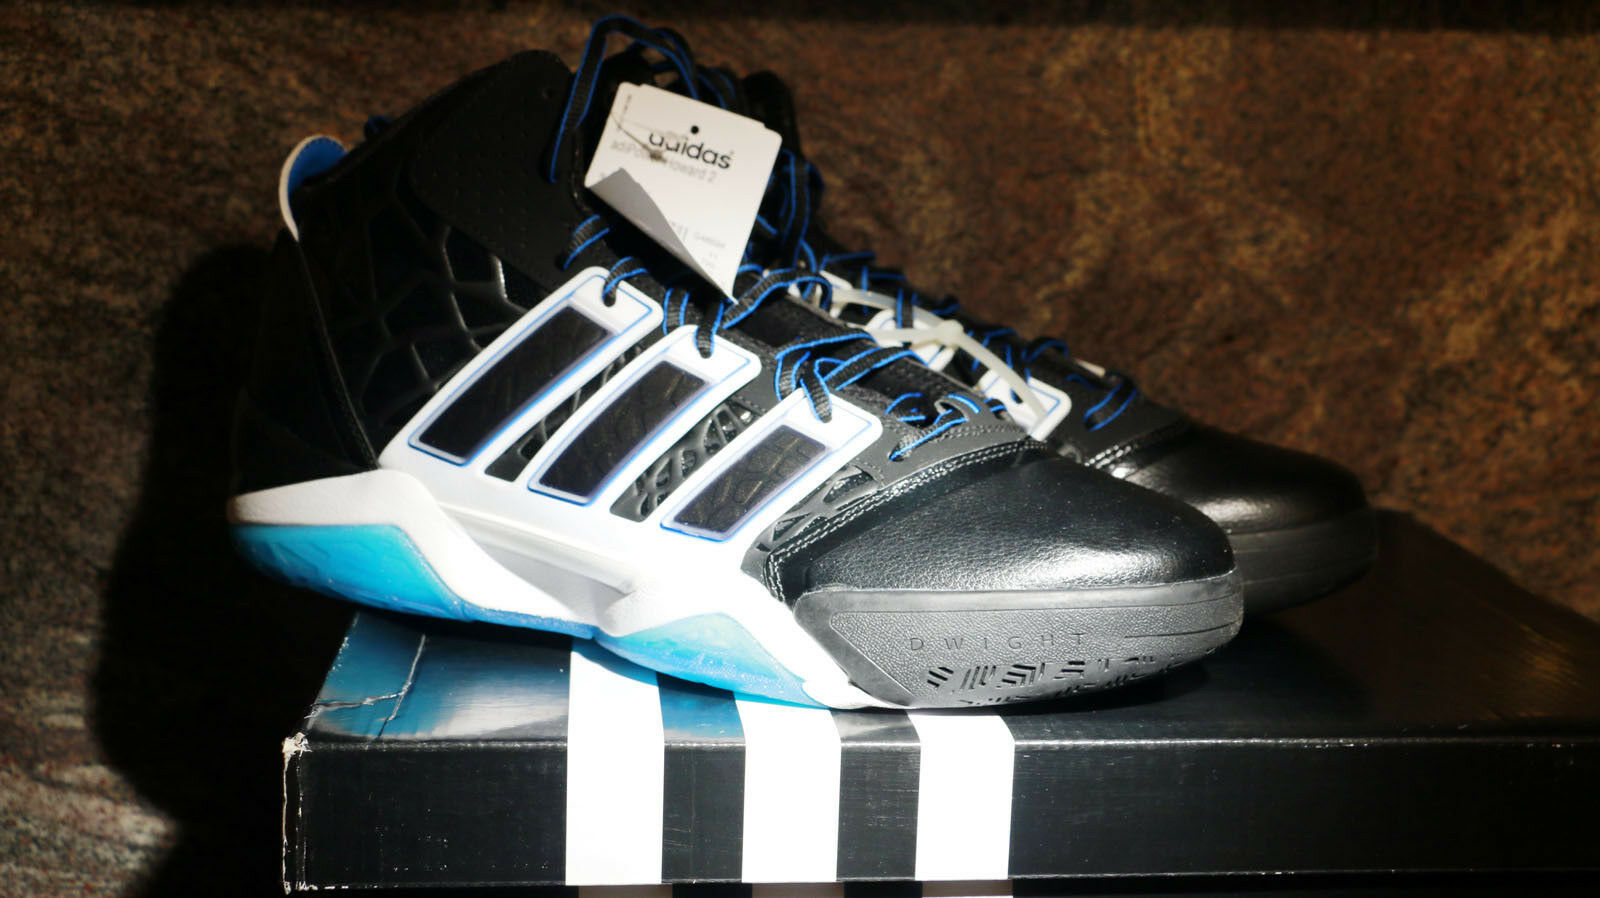 Adidas adipower howard 2 via g48694 nero nero 11,5 / blu brillante dimensioni 11,5 nero bec92c